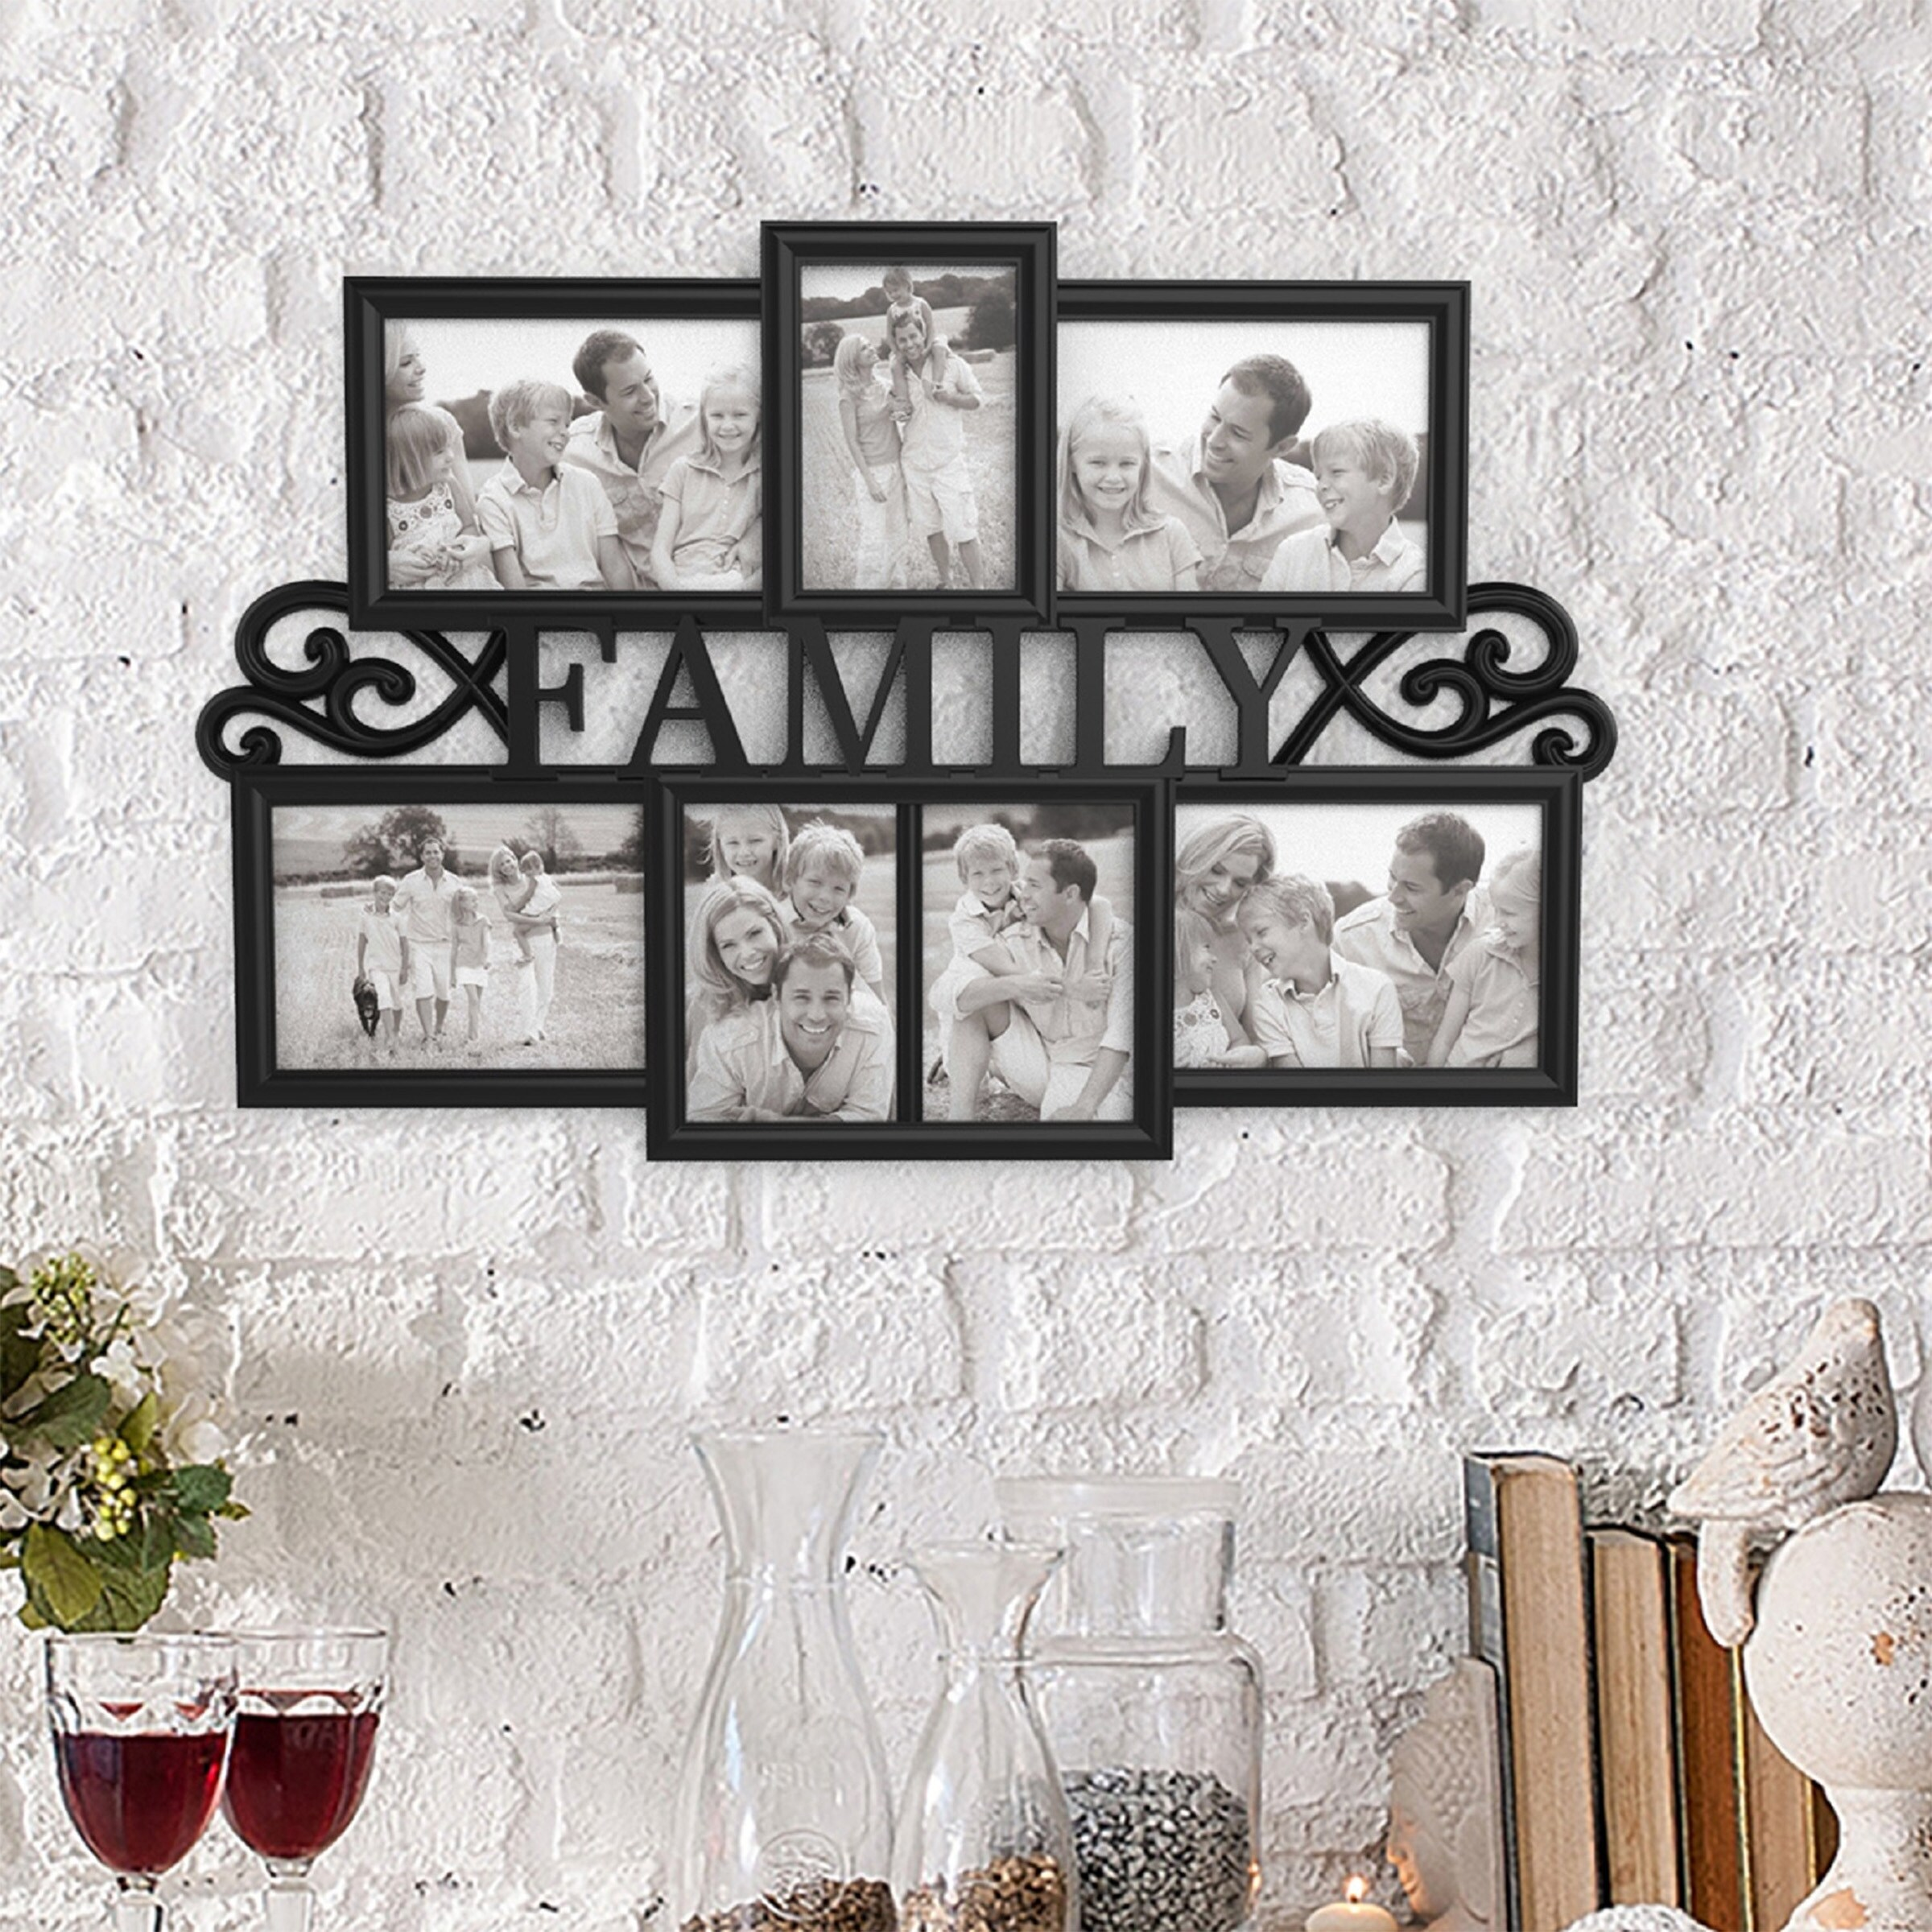 Shop Family Collage Picture Frame with 7 Openings for Three 4x6 and ...